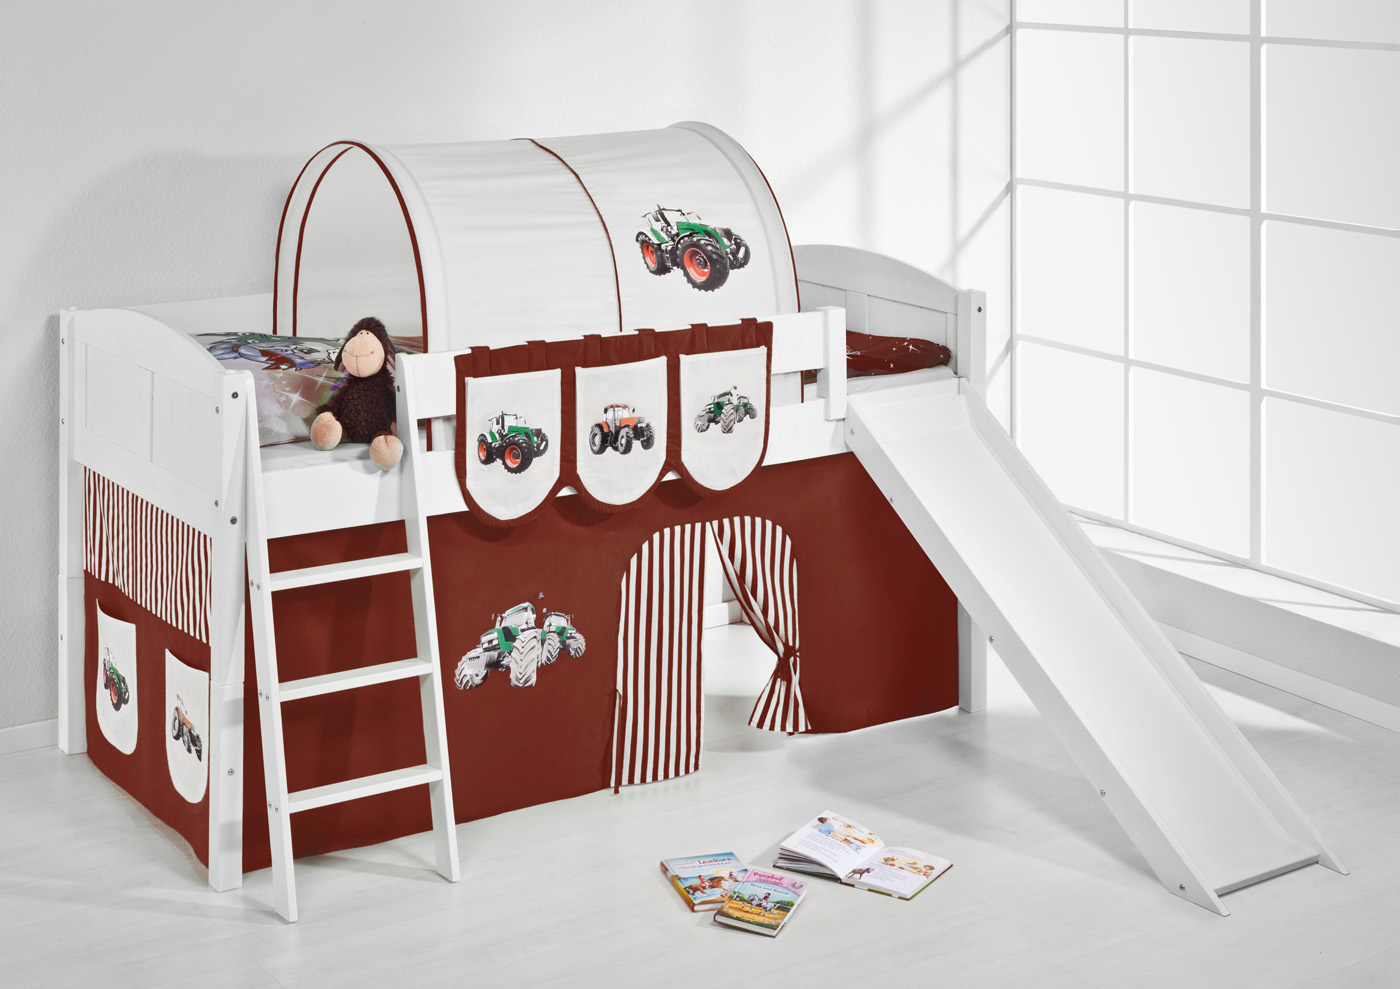 spielbett hochbett kinderbett kinder bett mit rutsche. Black Bedroom Furniture Sets. Home Design Ideas